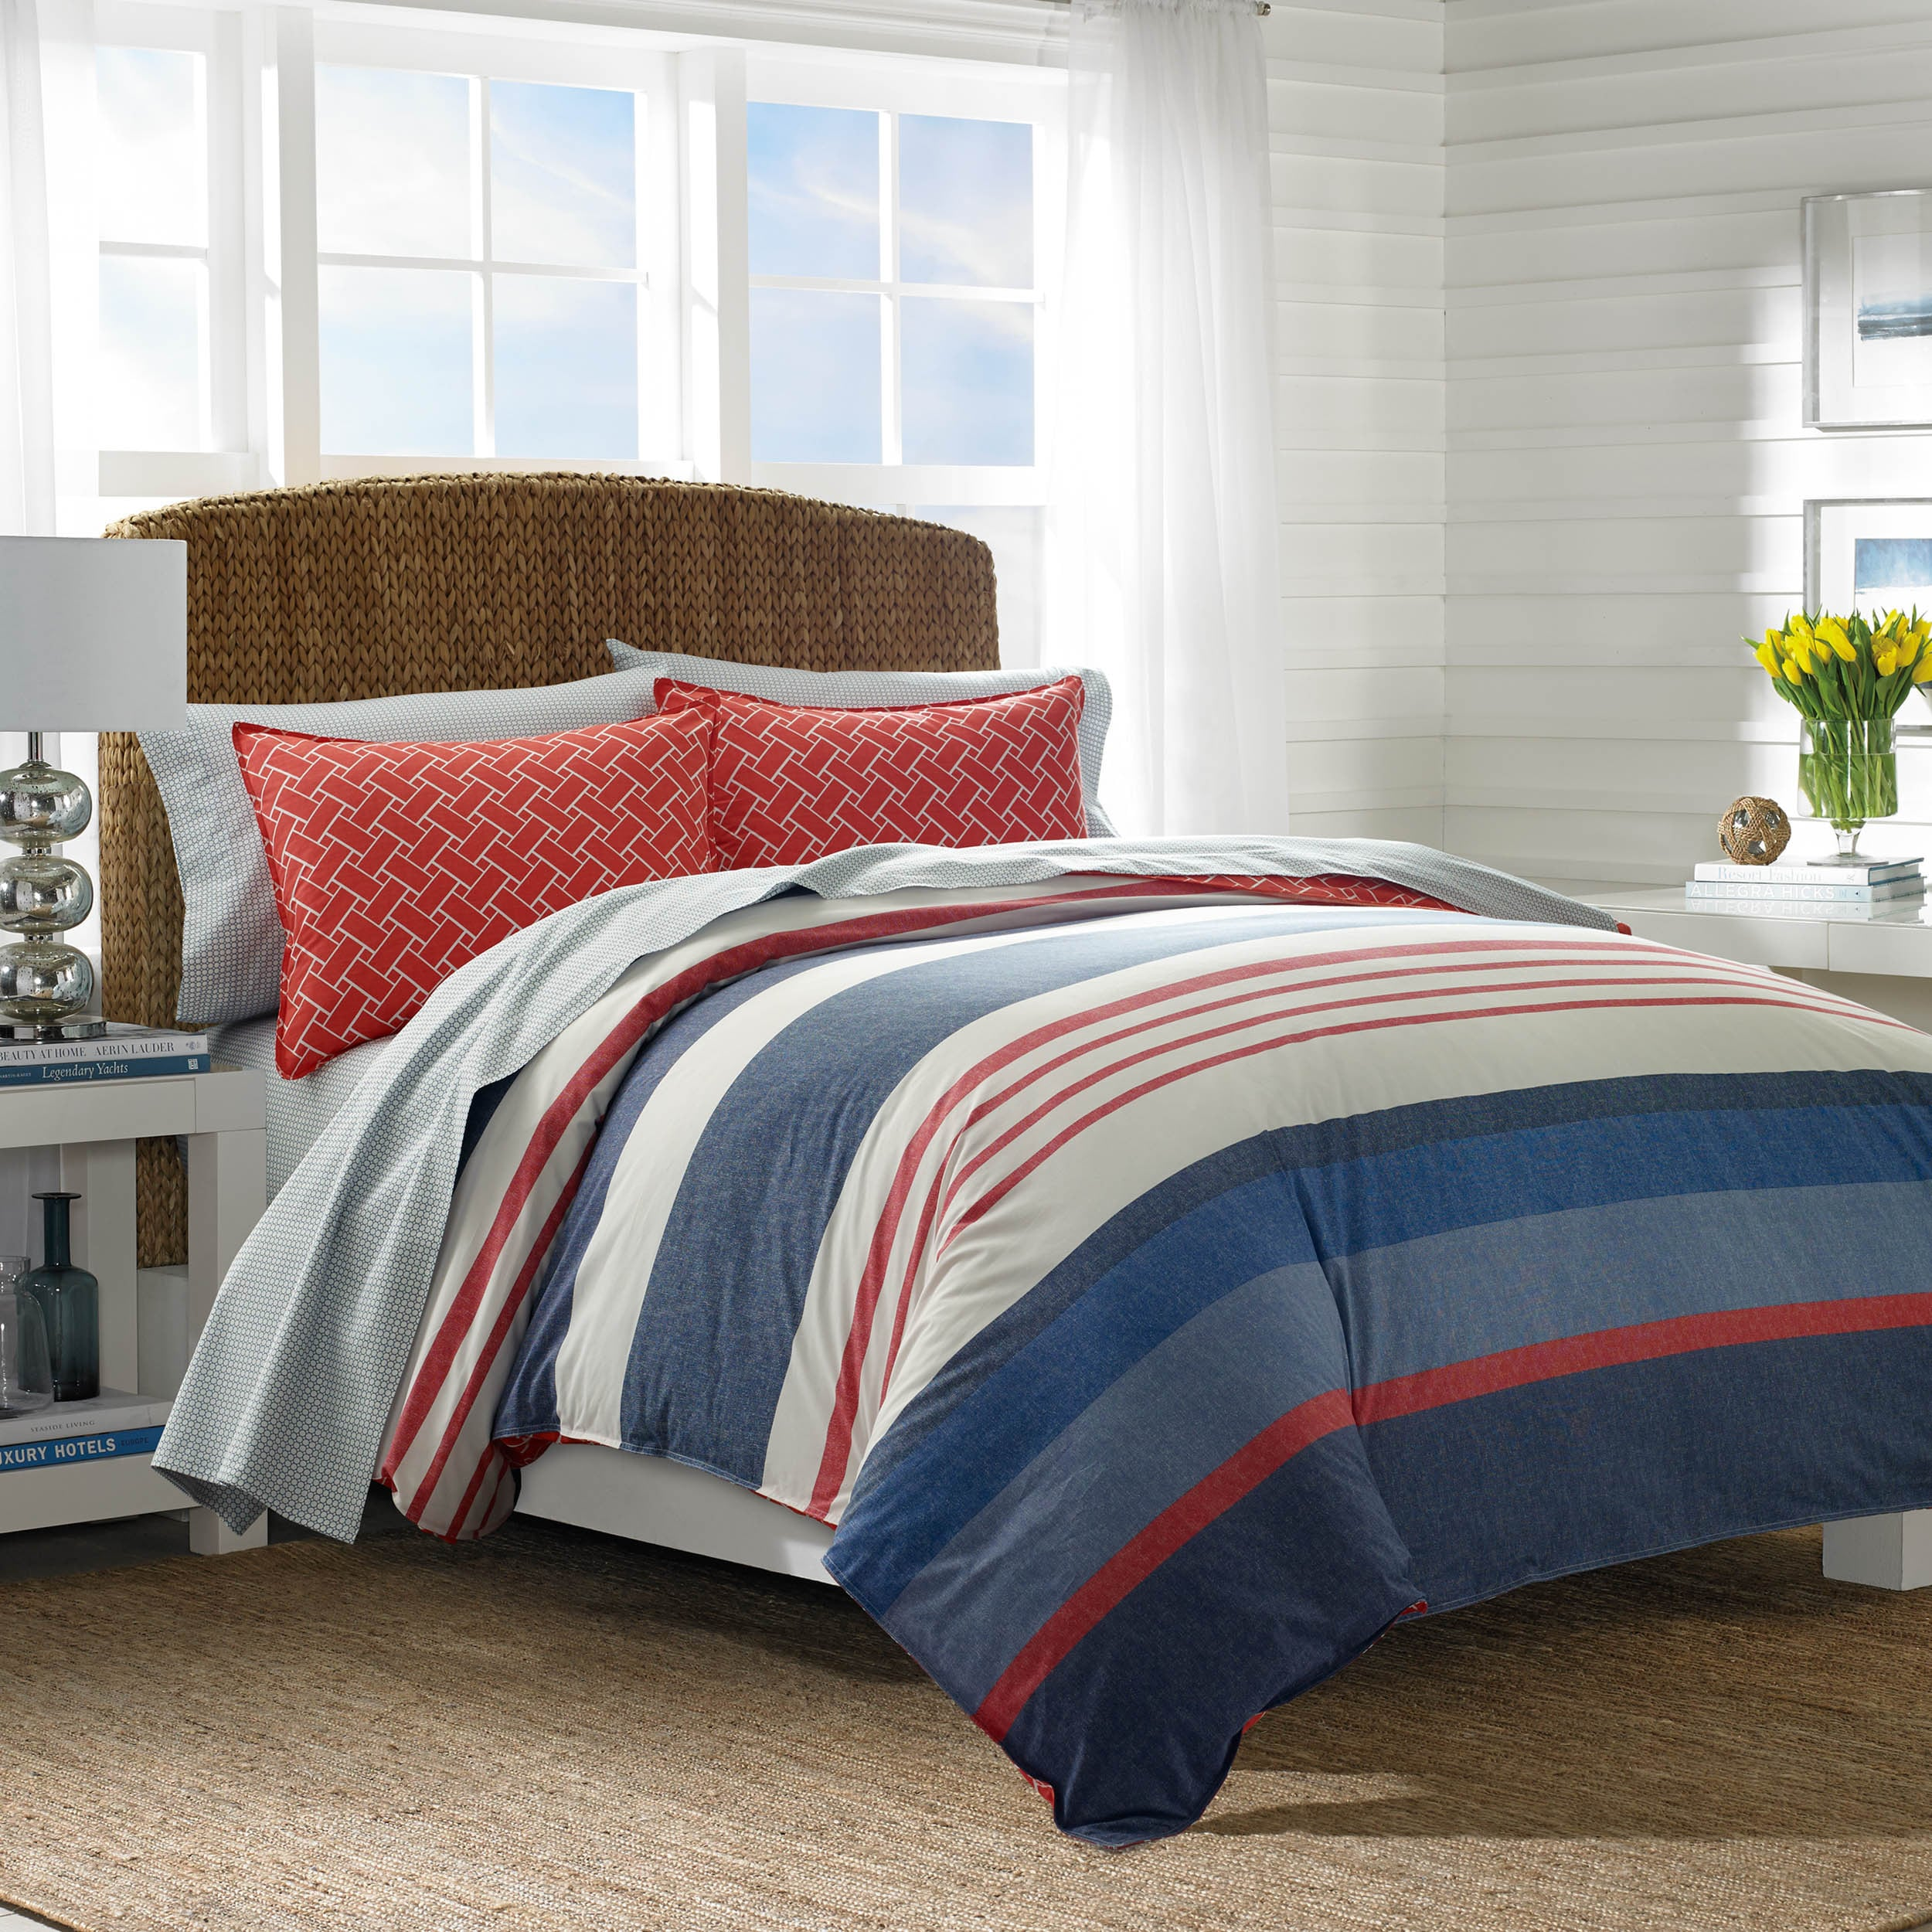 queen maroon decoration stripe rustic nautica pattern bedroom extraordinary bedding comforter in cali ideas stunning with for set southport s bed sets white king black